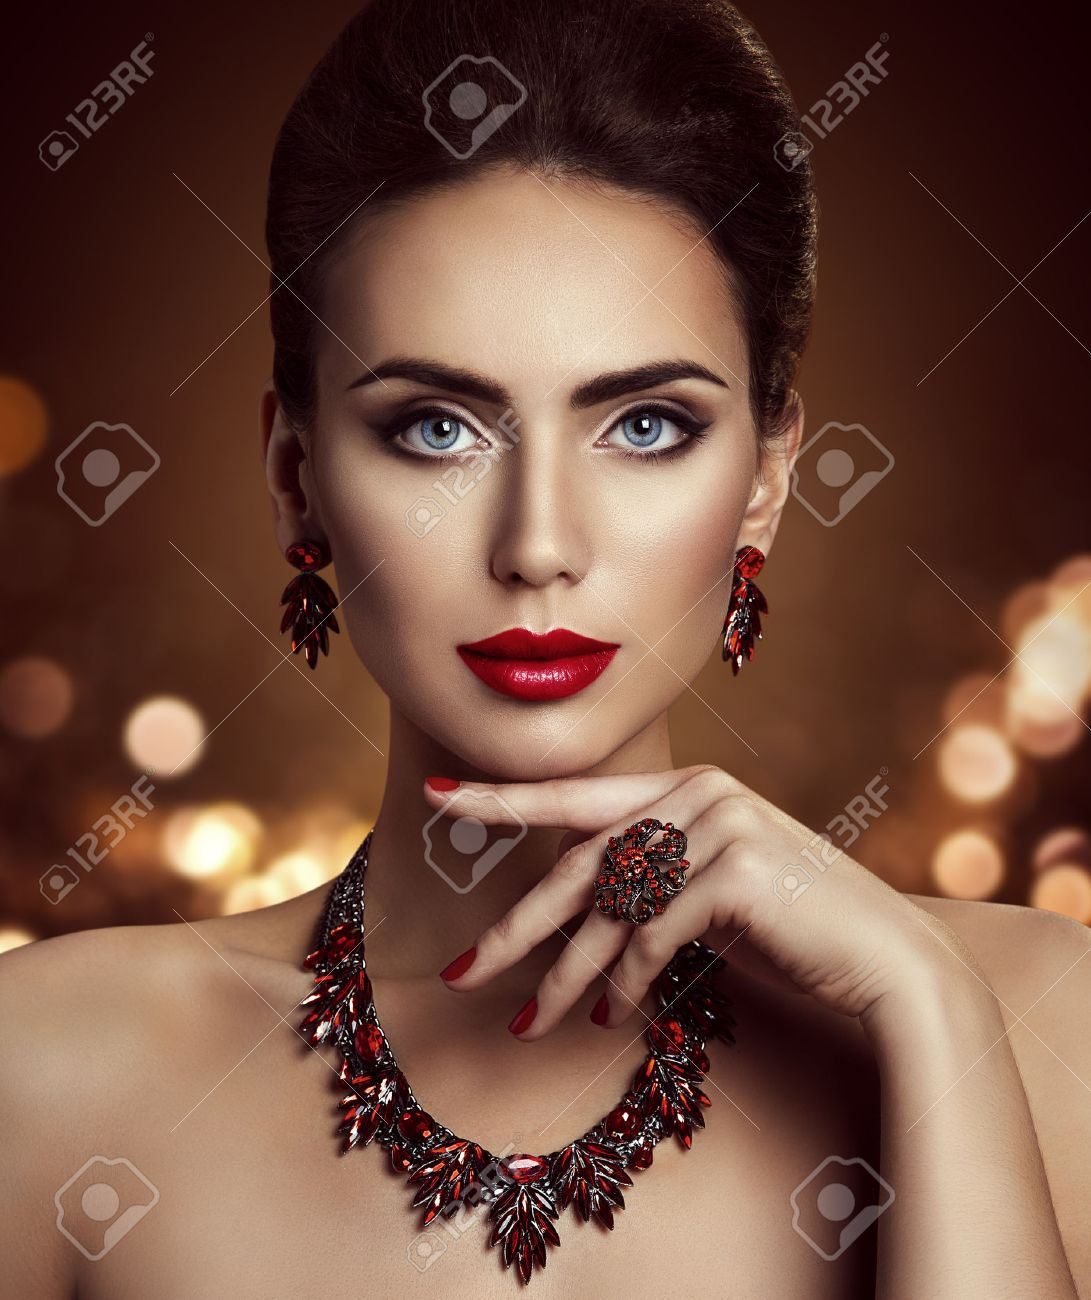 Fashion Model Beauty Makeup And Jewelry Elegant Woman Beautiful Face Make Up With Jewellery Closeup Banco De Imagens Royalty Free Ilustracoes Imagens E Banco De Imagens Image 74996780